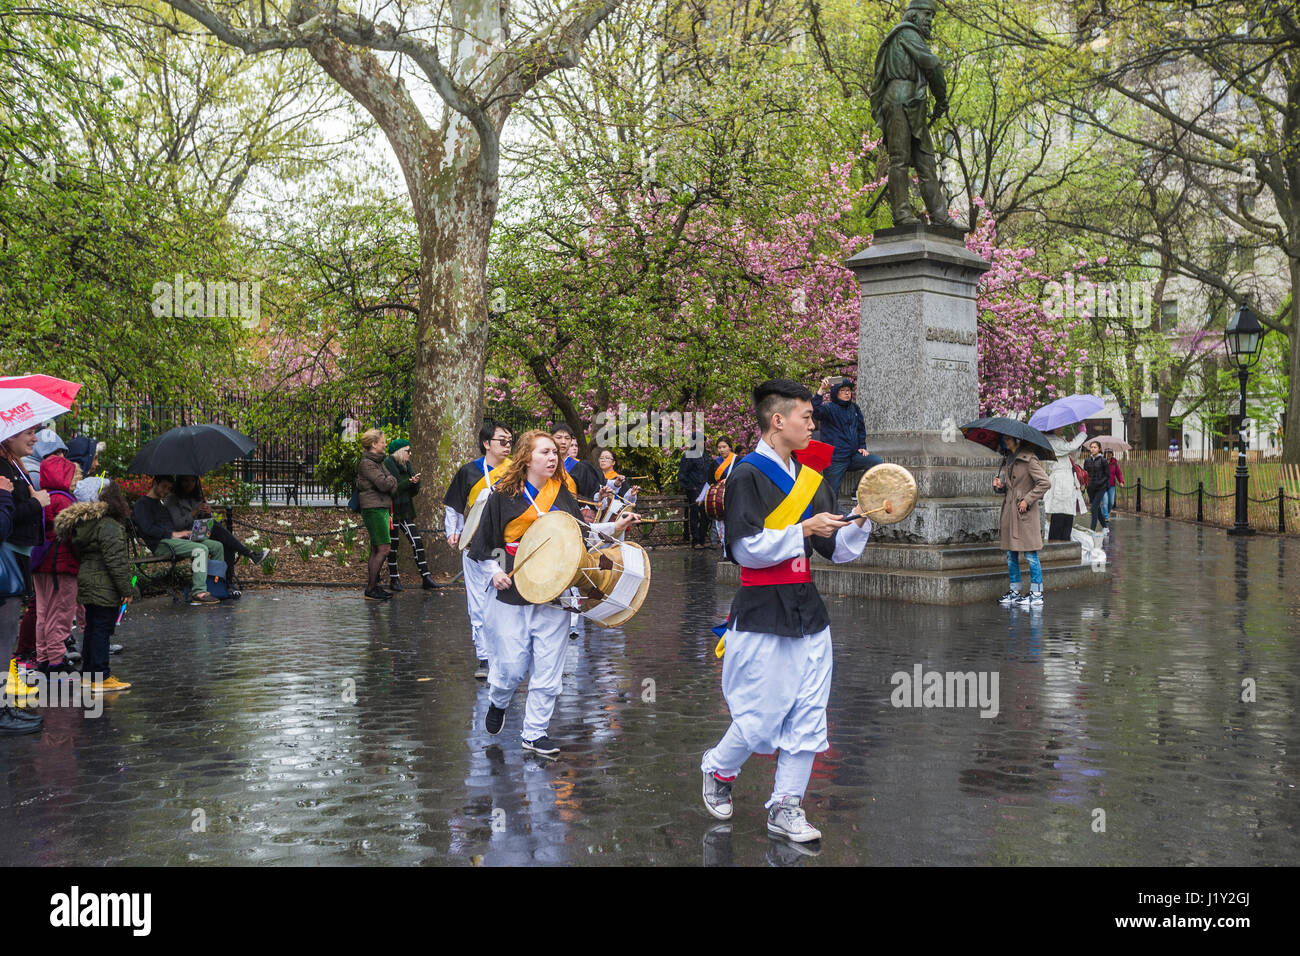 New York, NY 22 April 2017 - Korean NYU Students drum procession in Washington Square Park on Earth Day. © Stacy Stock Photo